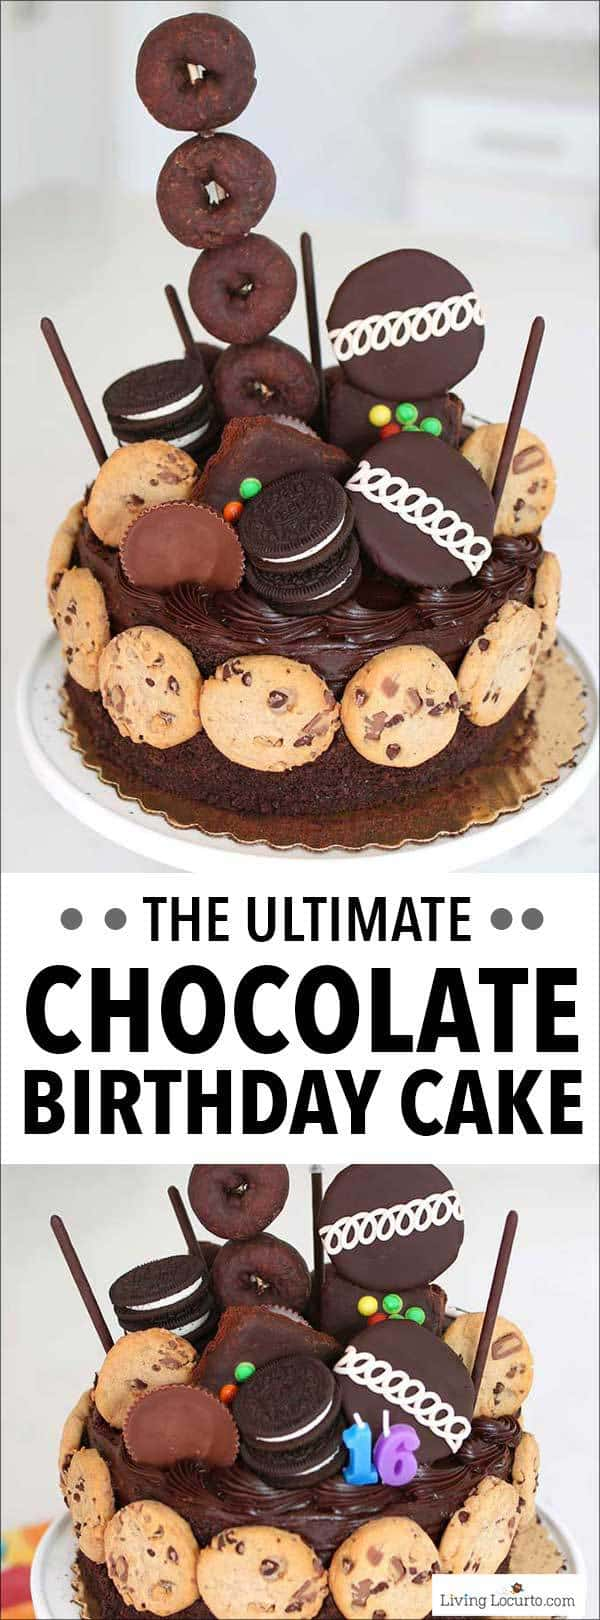 Make the Ultimate Chocolate Birthday Cake in minutes with this easy no bake dessert idea! A fun semi-homemade cake no chocolate lover could resist. 16th birthday party ideas. #cake #chocolate